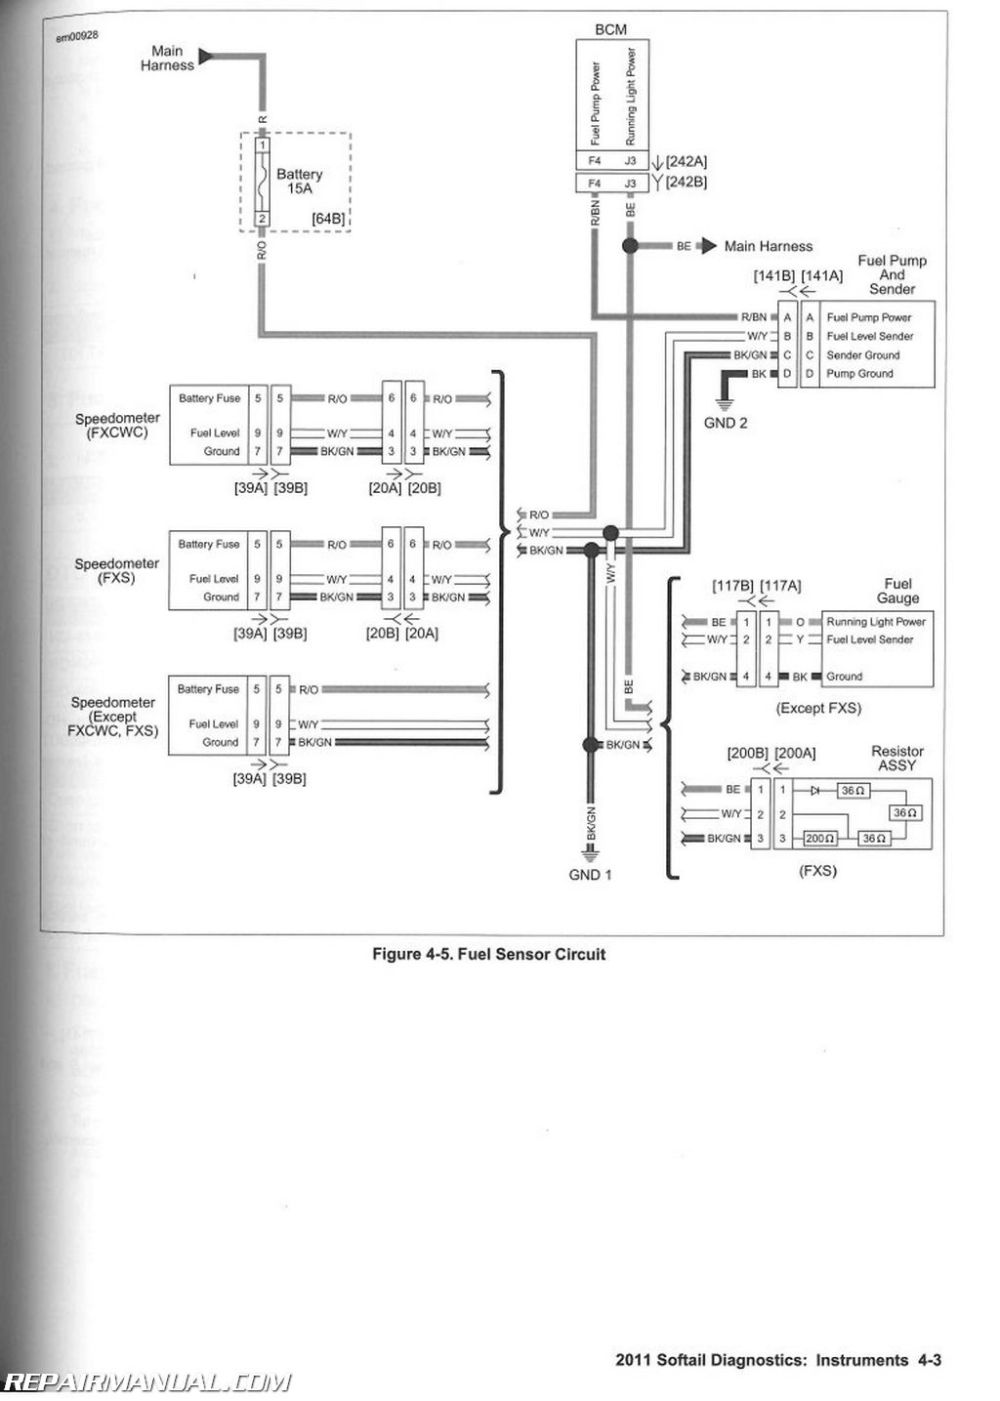 medium resolution of harley sd sensor wiring diagram wiring library harley sd sensor wiring diagram